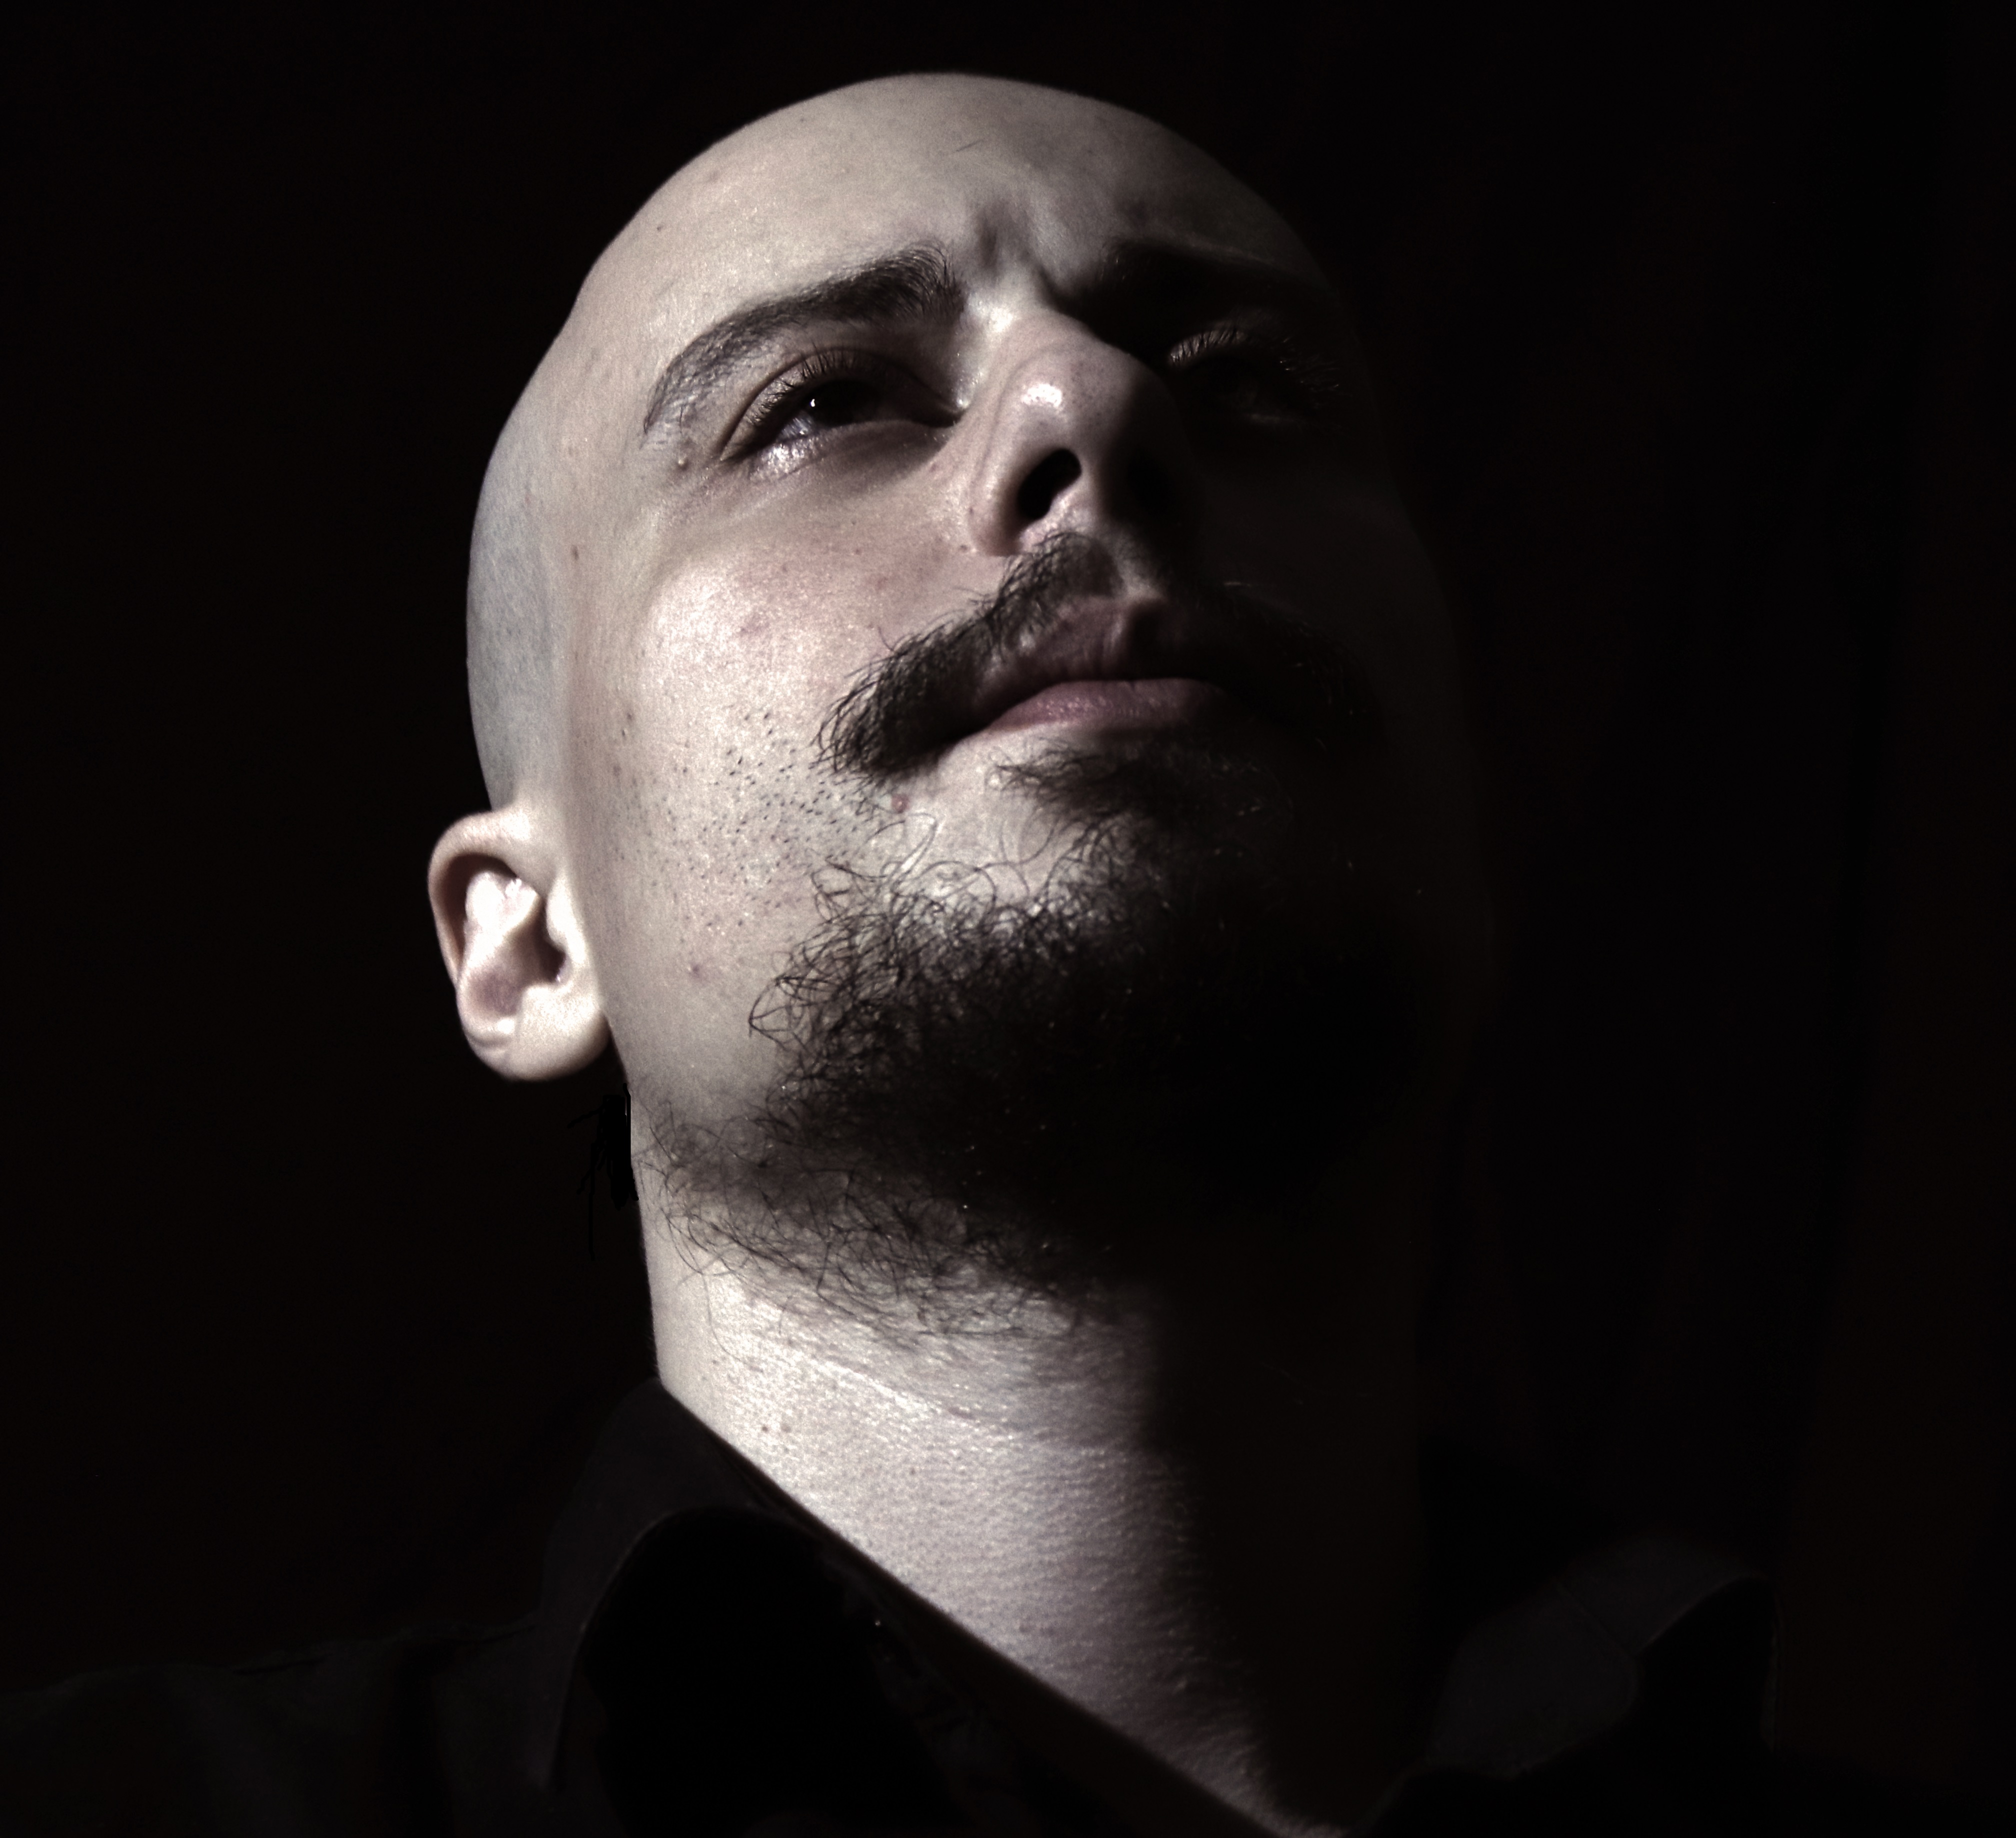 Experimental, Metal and Progressive Rock. This Singer Will Bring All of The Three to The Music World, Introducing Riccardo Moccia.